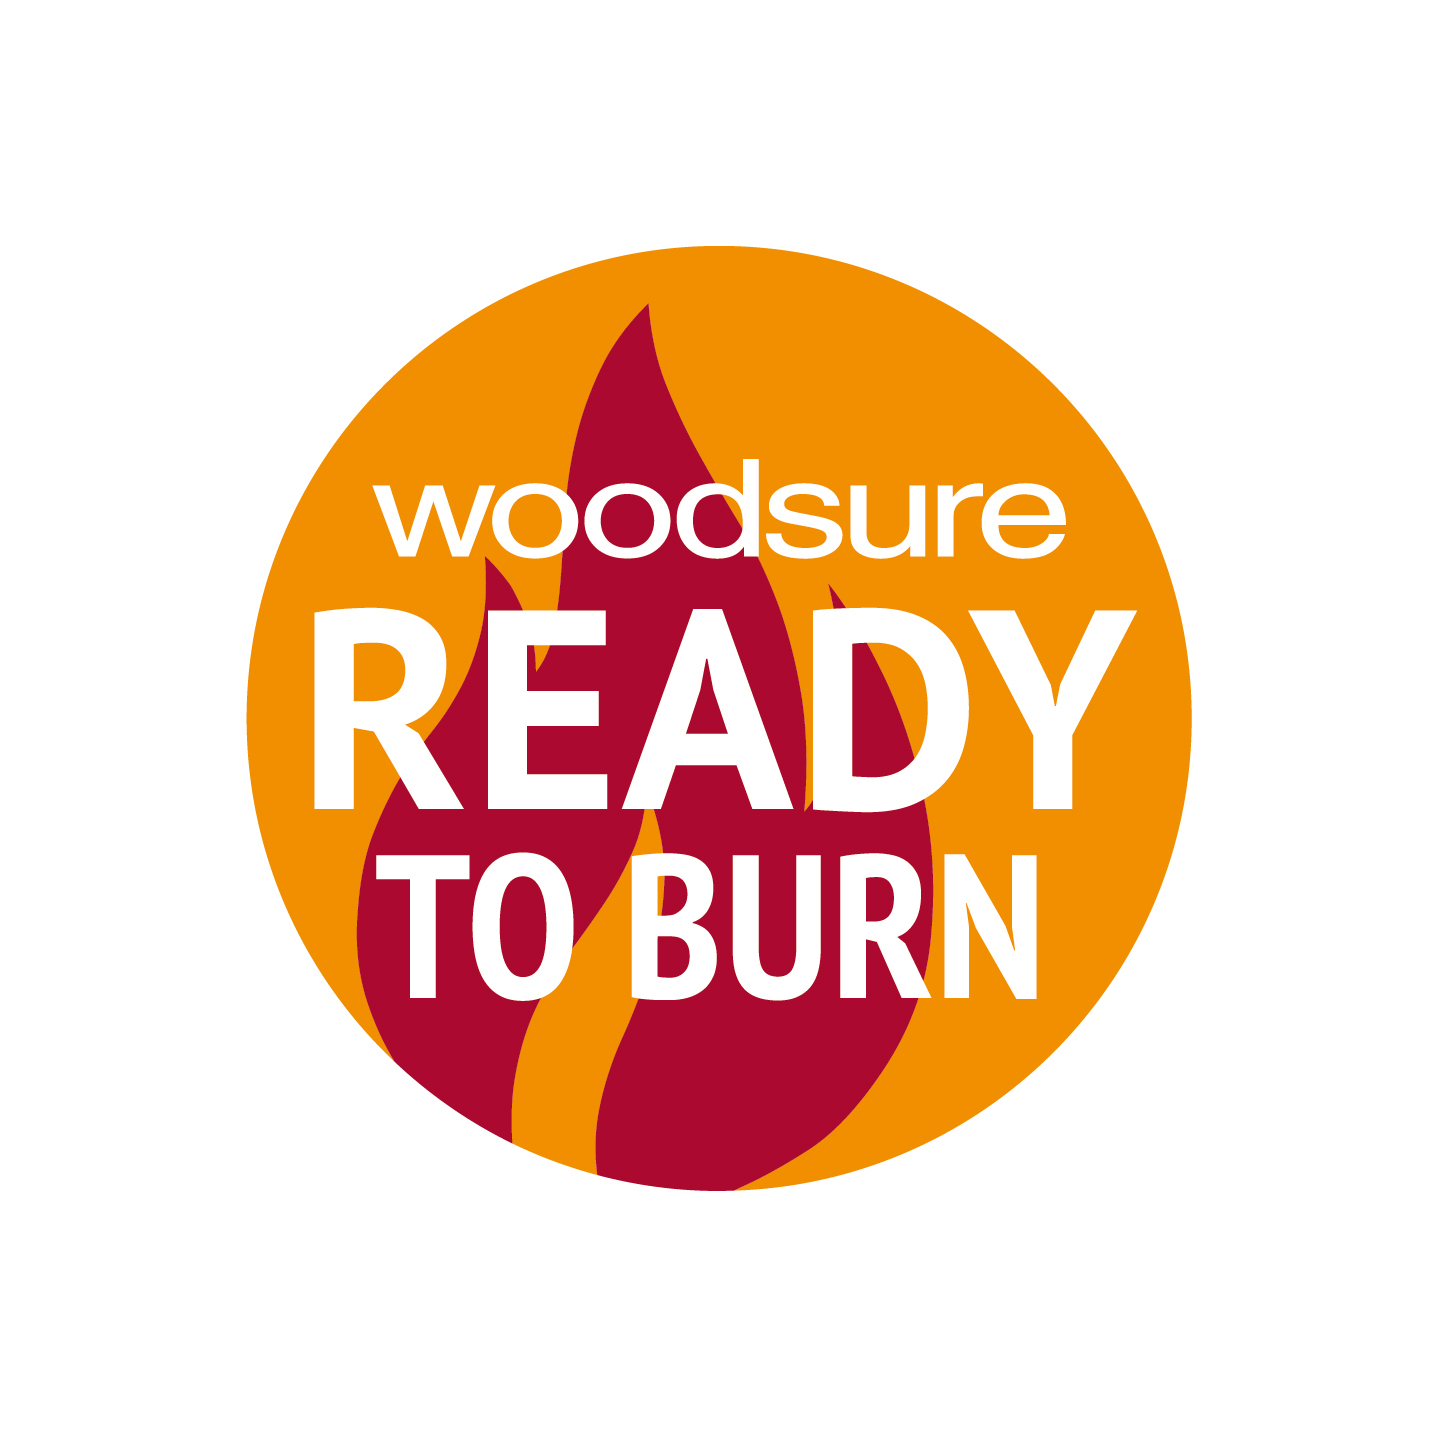 Wood Fuel Direct are approved under the Woodsure Ready to Burn Scheme